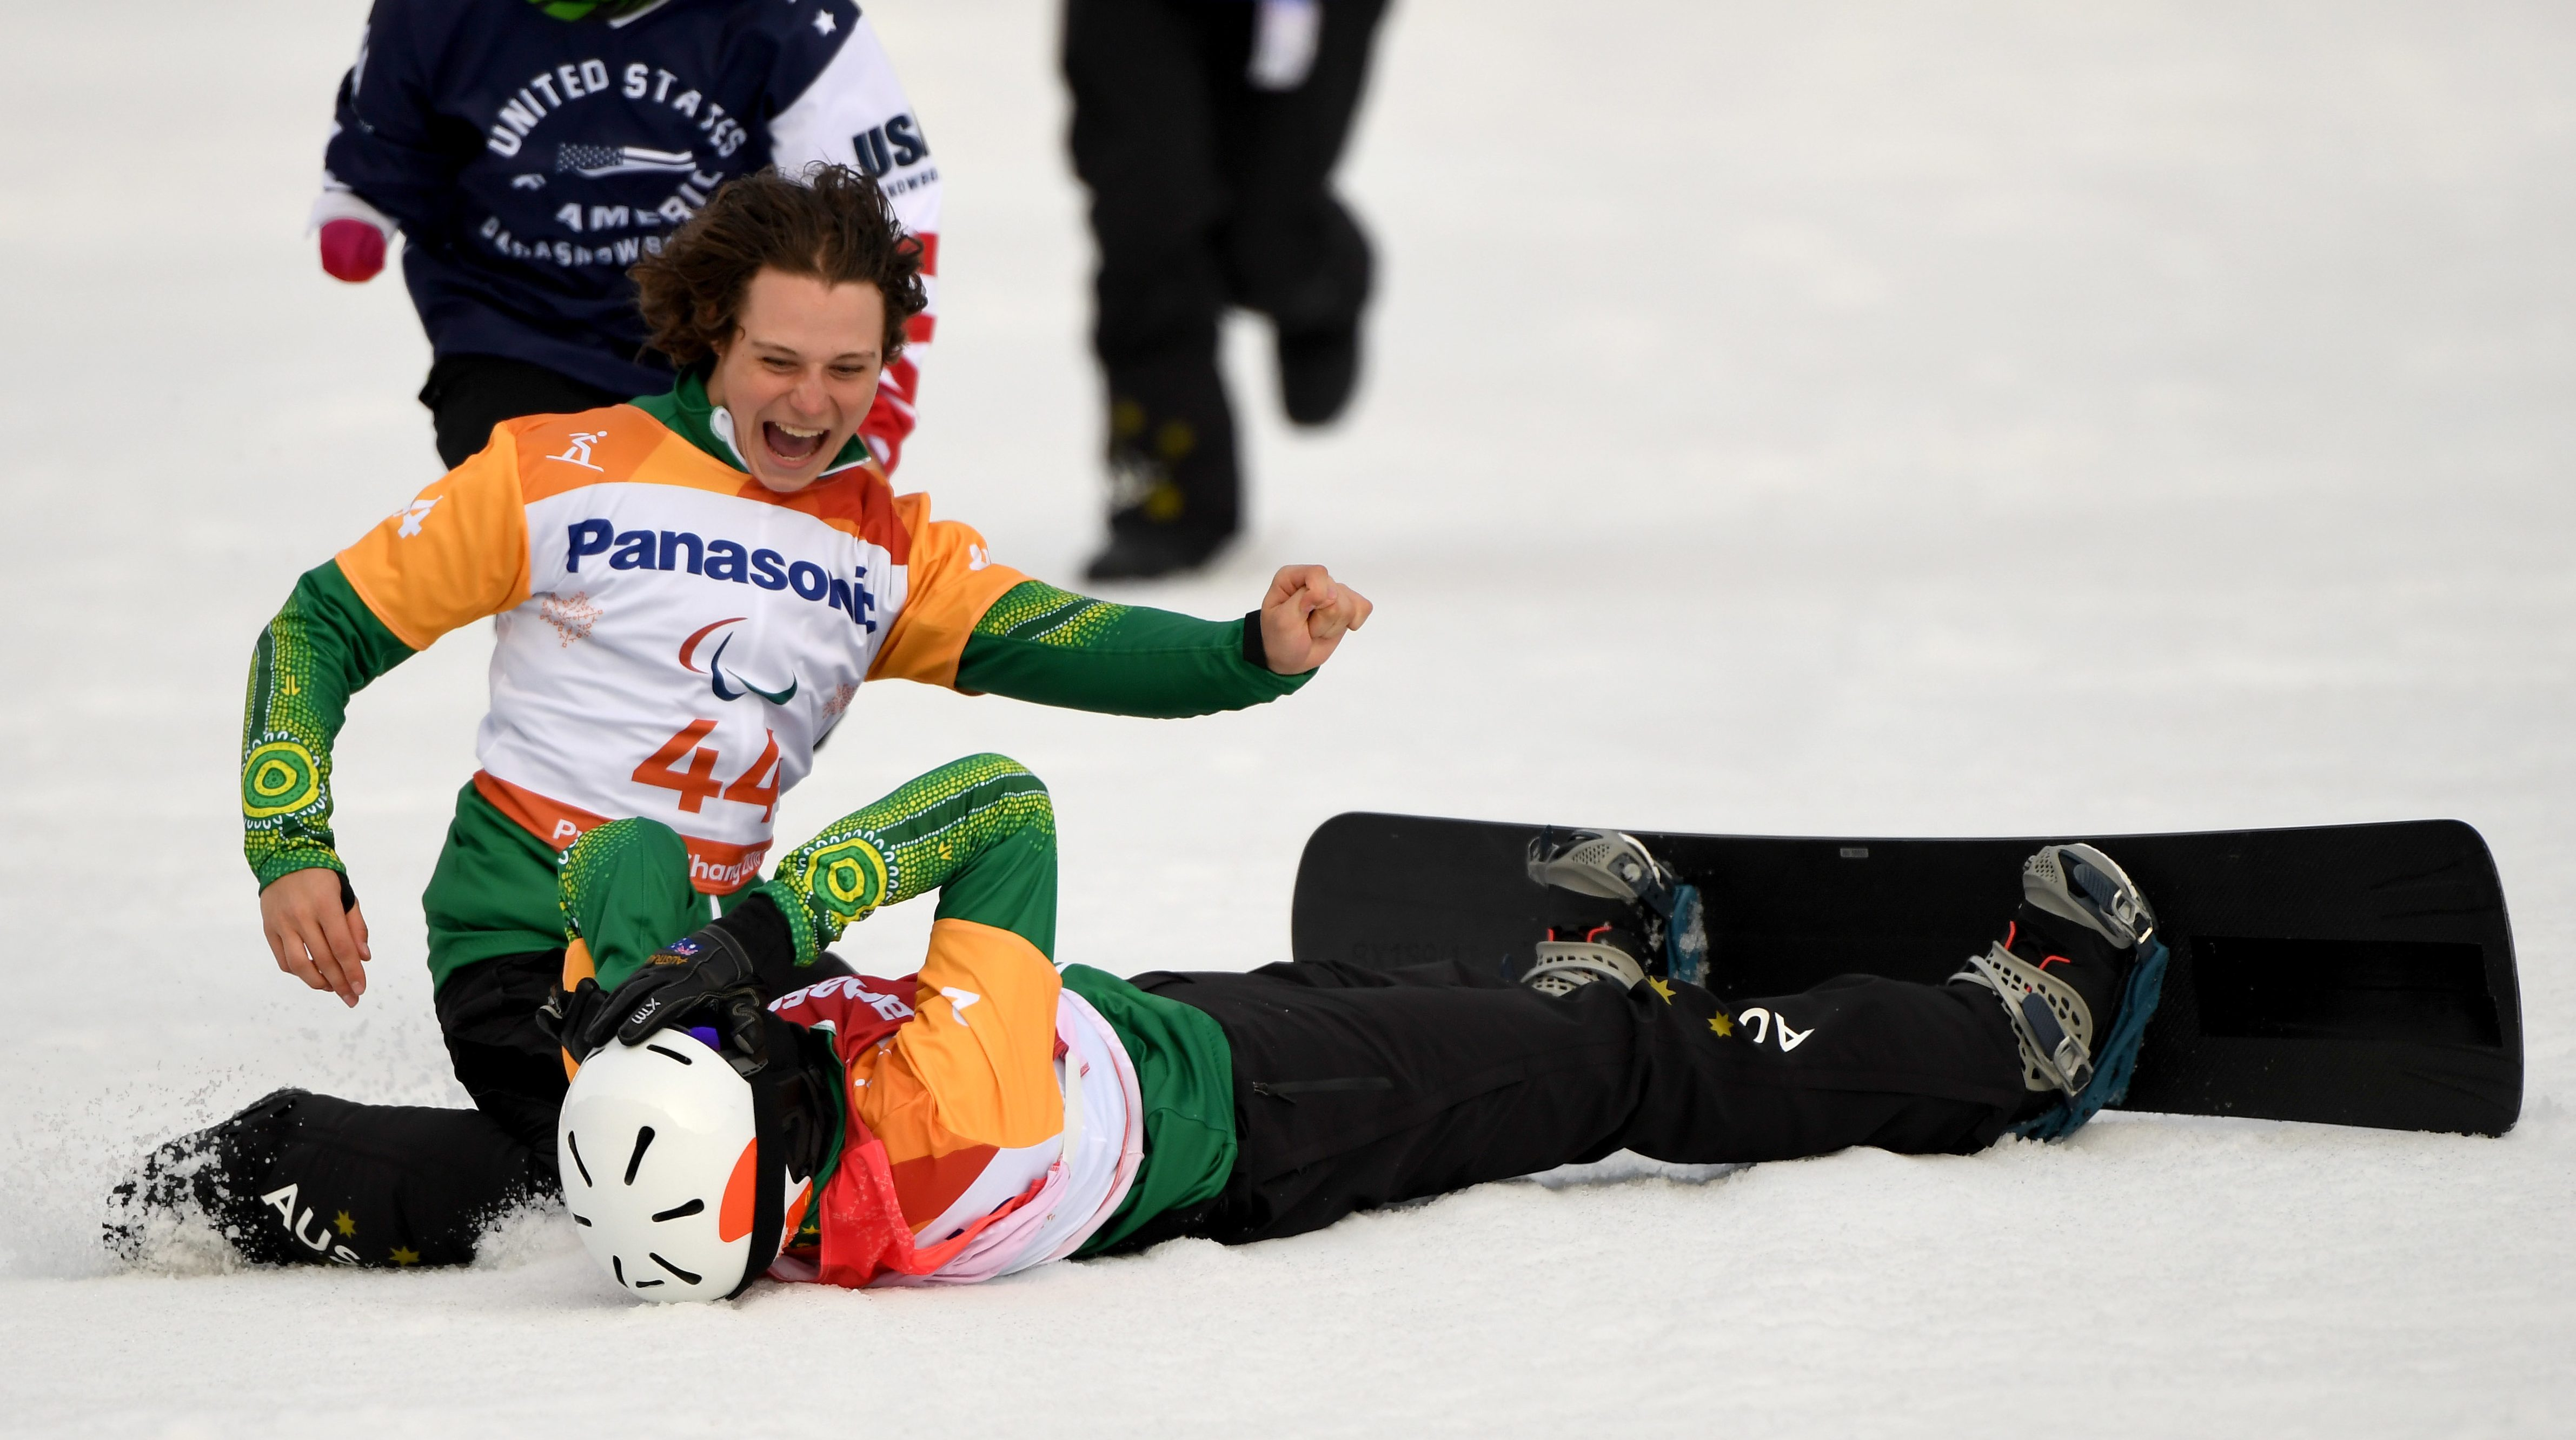 Commonwealth Games and Summer Paralympics help Patmore win gold in PyeongChang